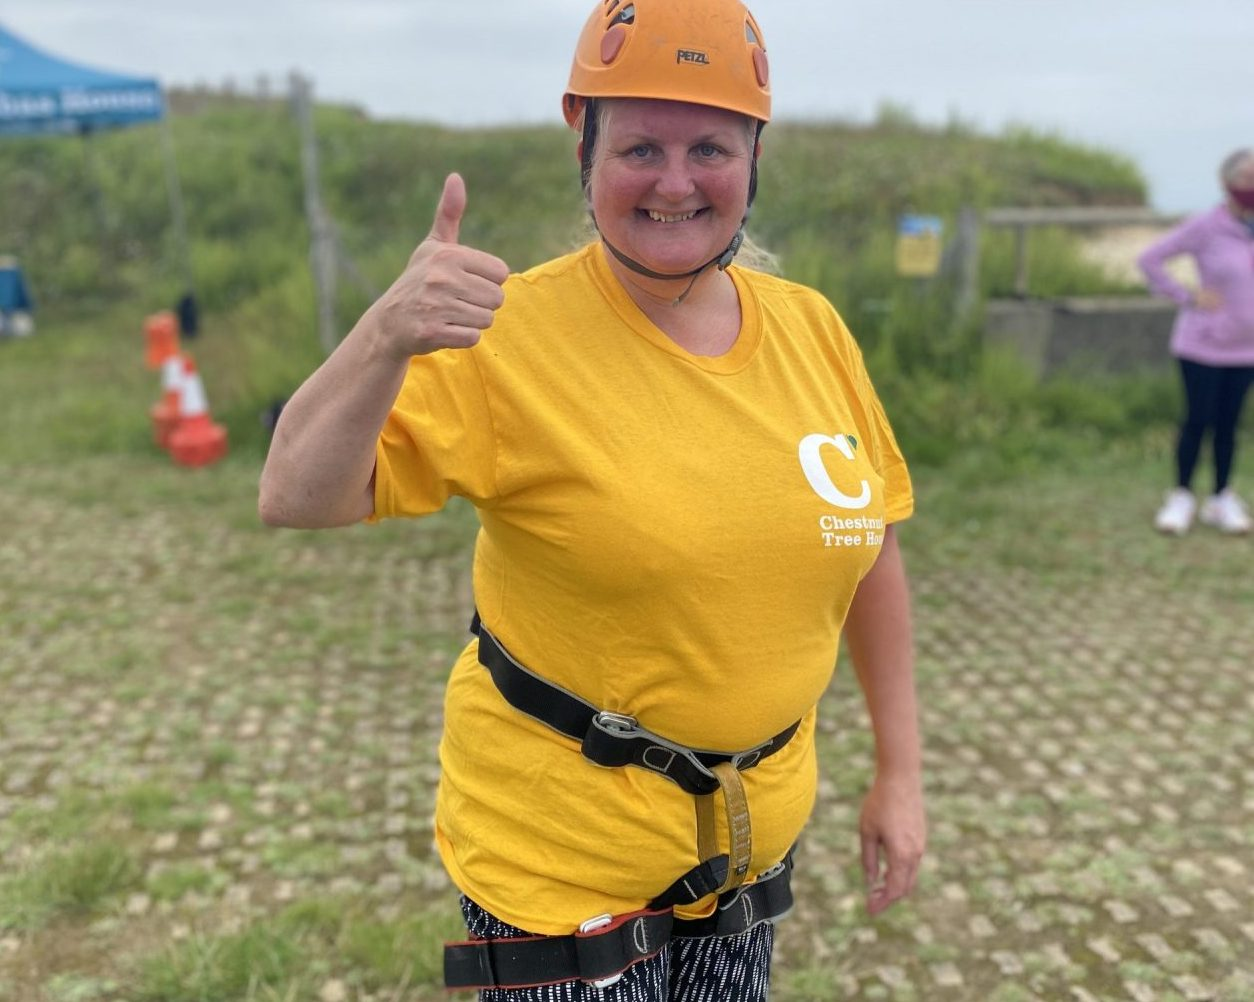 Nicky's 50 challenges for her 50th birthday